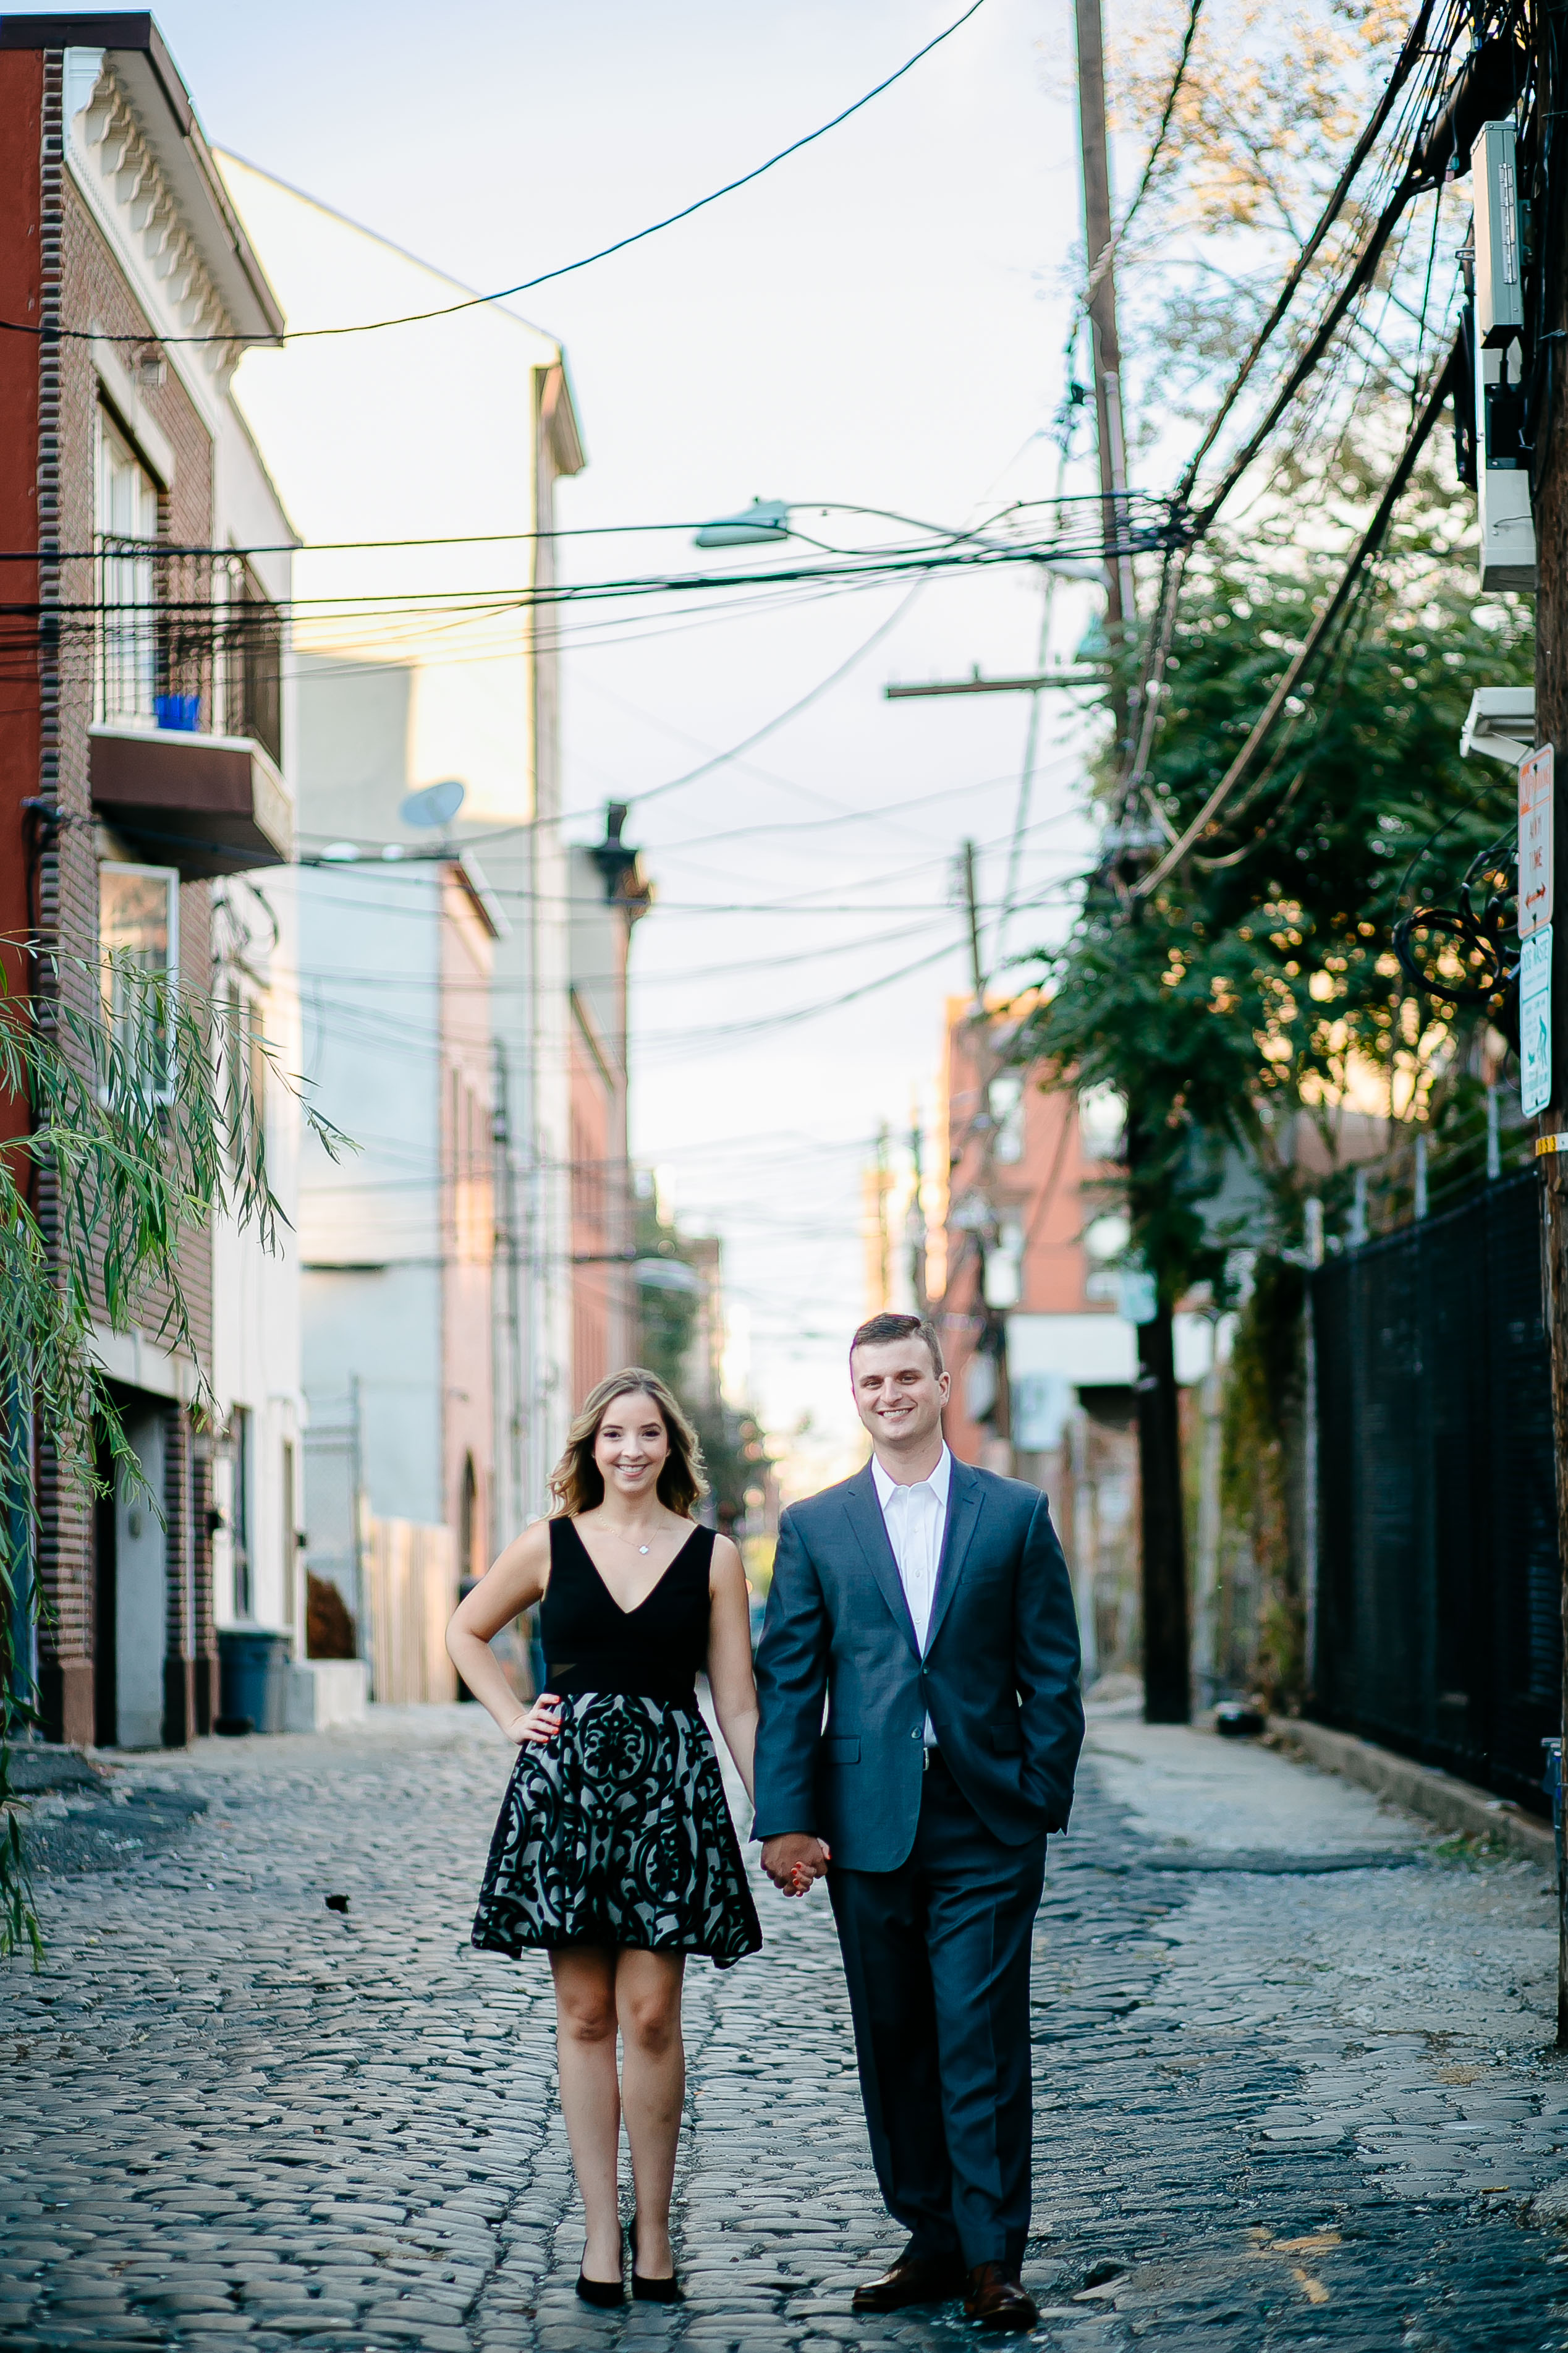 Our Hoboken bride and groom had an amazing engagement photo session and you can read our blog for trips and tricks for yours!